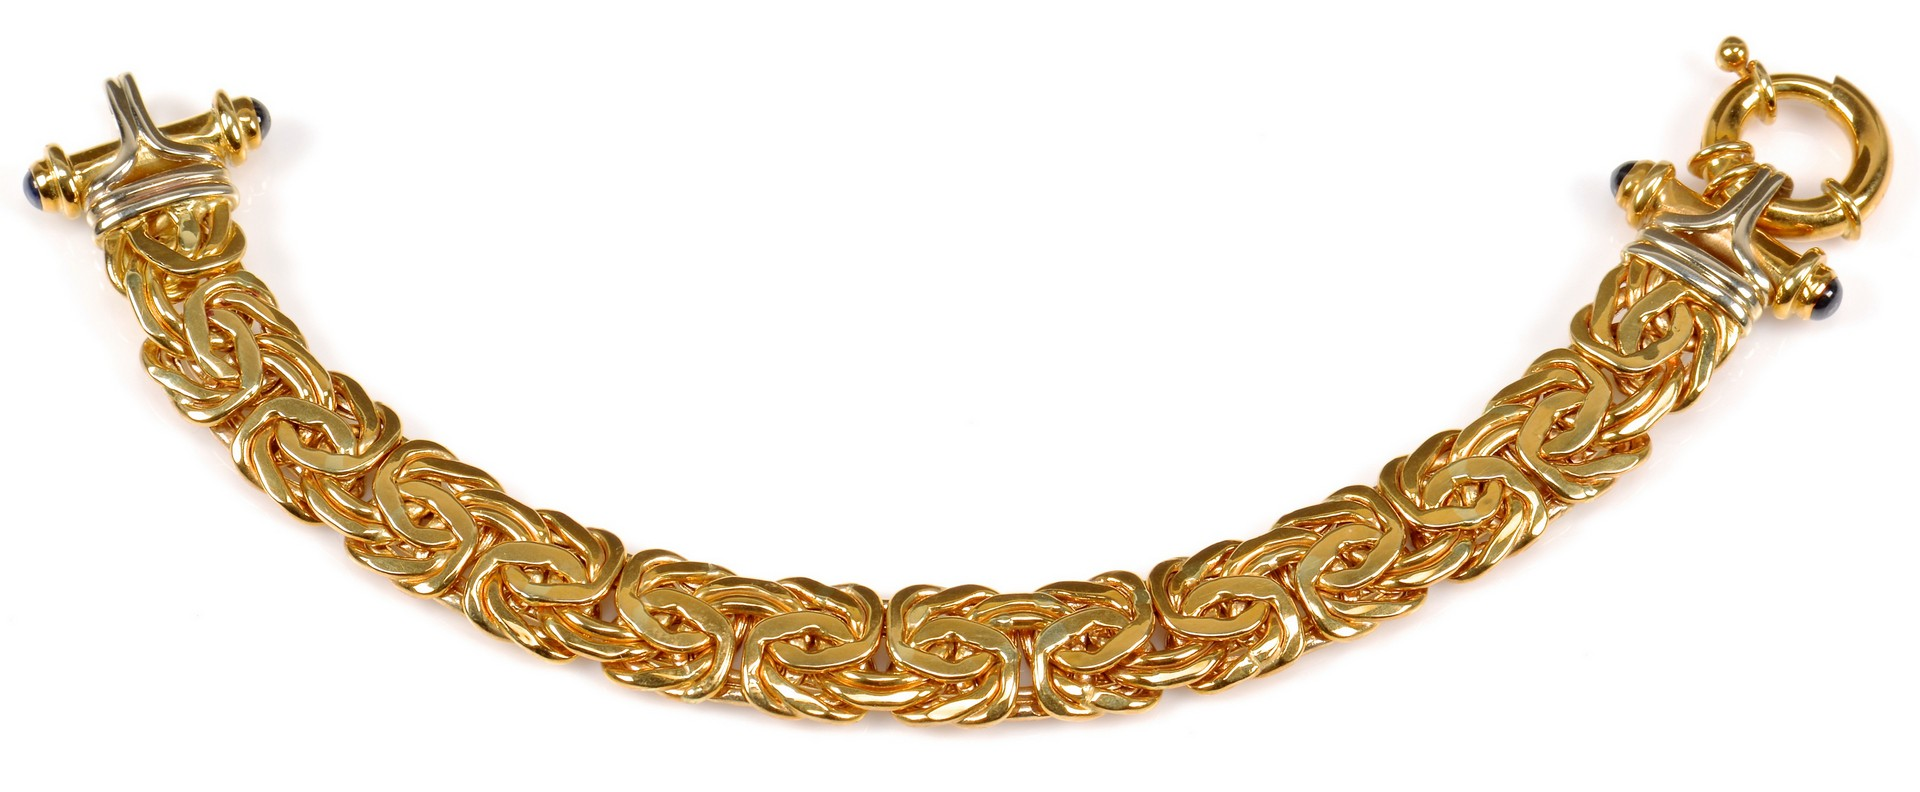 Lot 359: 18K Bracelet with Sapphires, from Turkey.